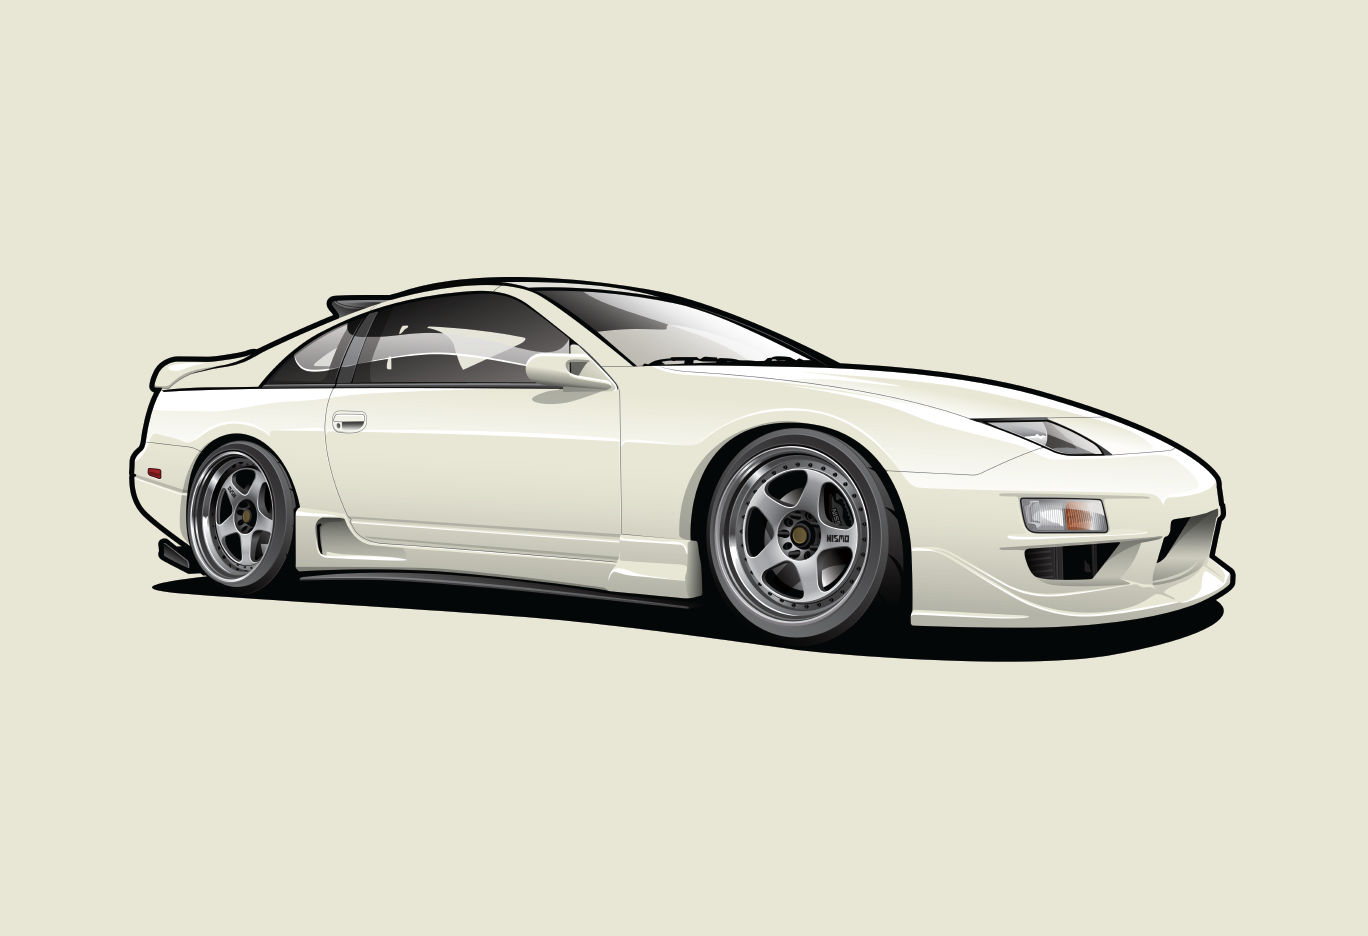 300zx-01.png